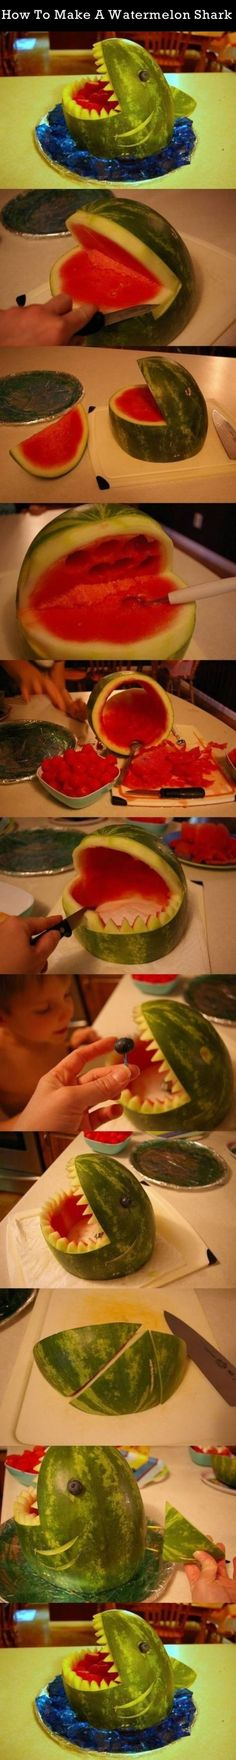 How To Make A Watermelon Shark summer food fruit diy how to tutorial party ideas party food party favors food art tutorials summer ideas food carving Ocean Party, Water Party, Shark Party, Beach Party, Party Summer, Summer Food, Summer Ideas, Summer Beach, Watermelon Shark Carving